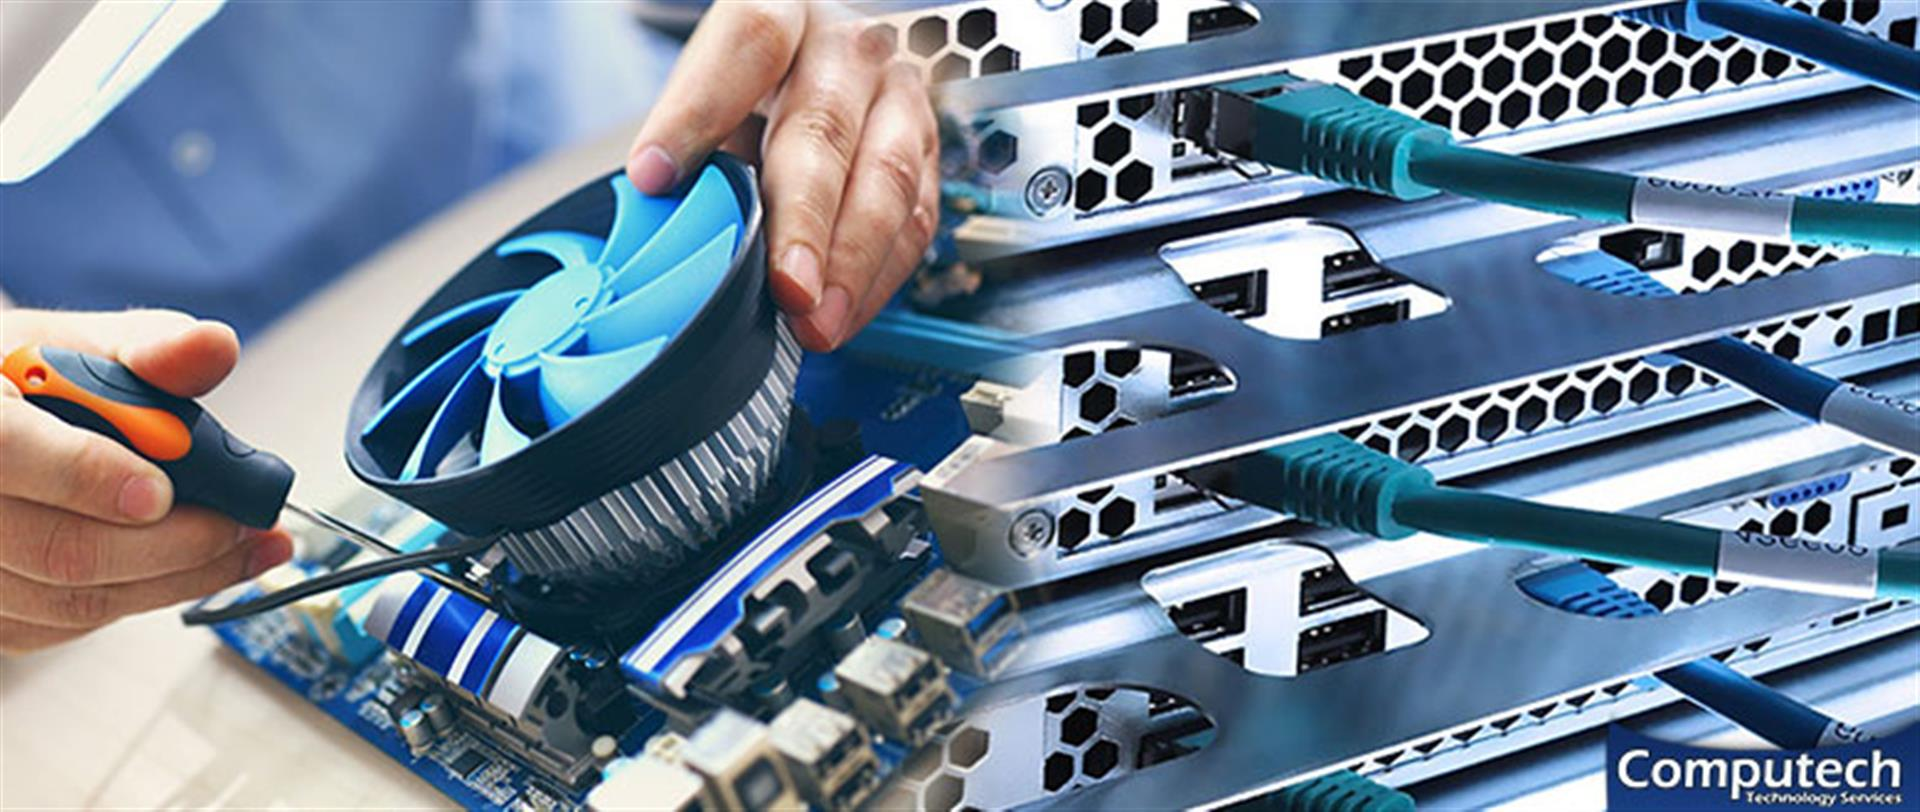 Virginia Beach Virginia Onsite Computer & Printer Repairs, Network, Voice & Data Cabling Contractors